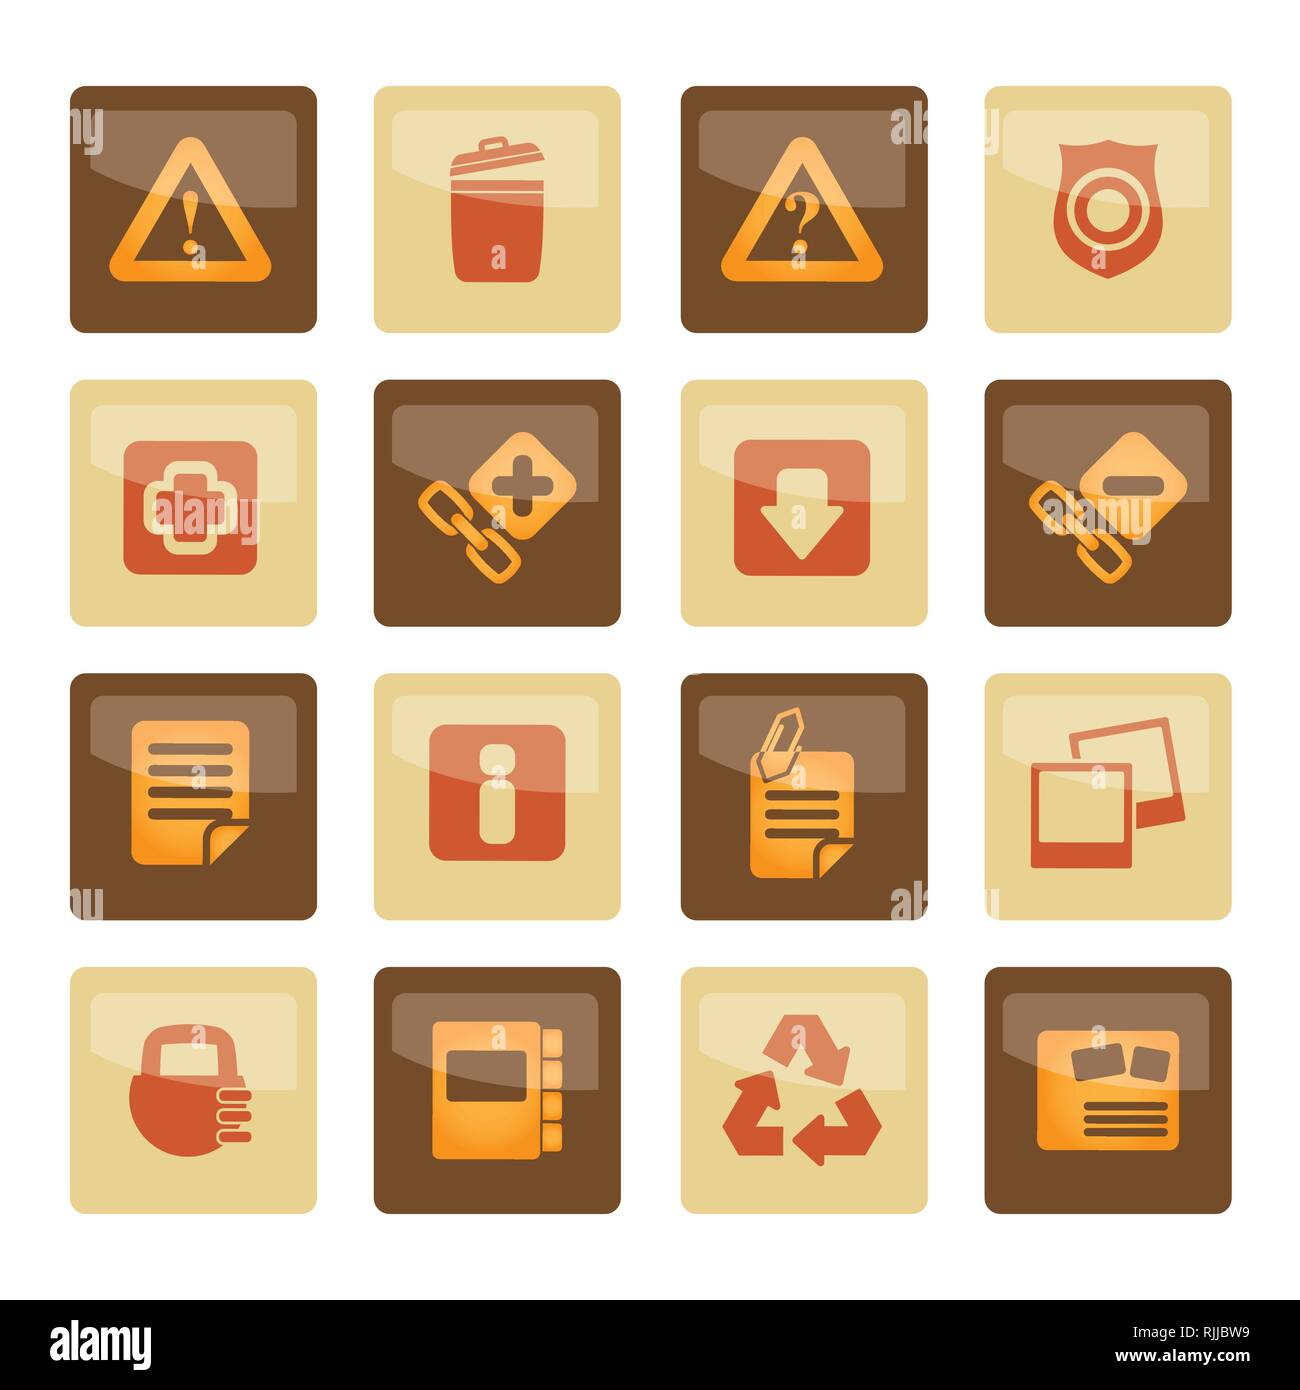 Web site and computer Icons over brown background - vector icon set - Stock Vector